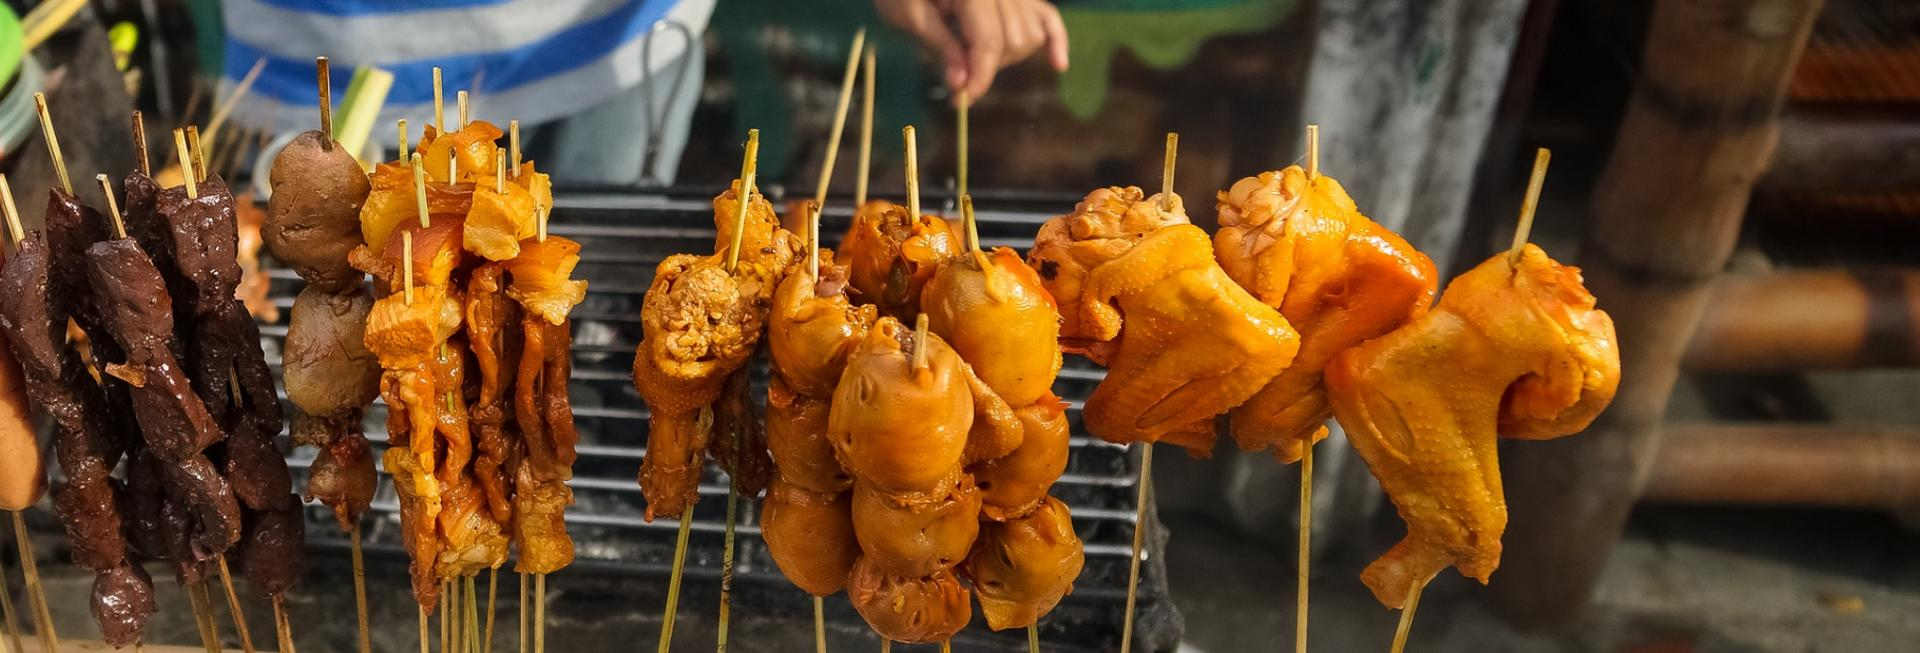 Manila Food Tour, the Philippines